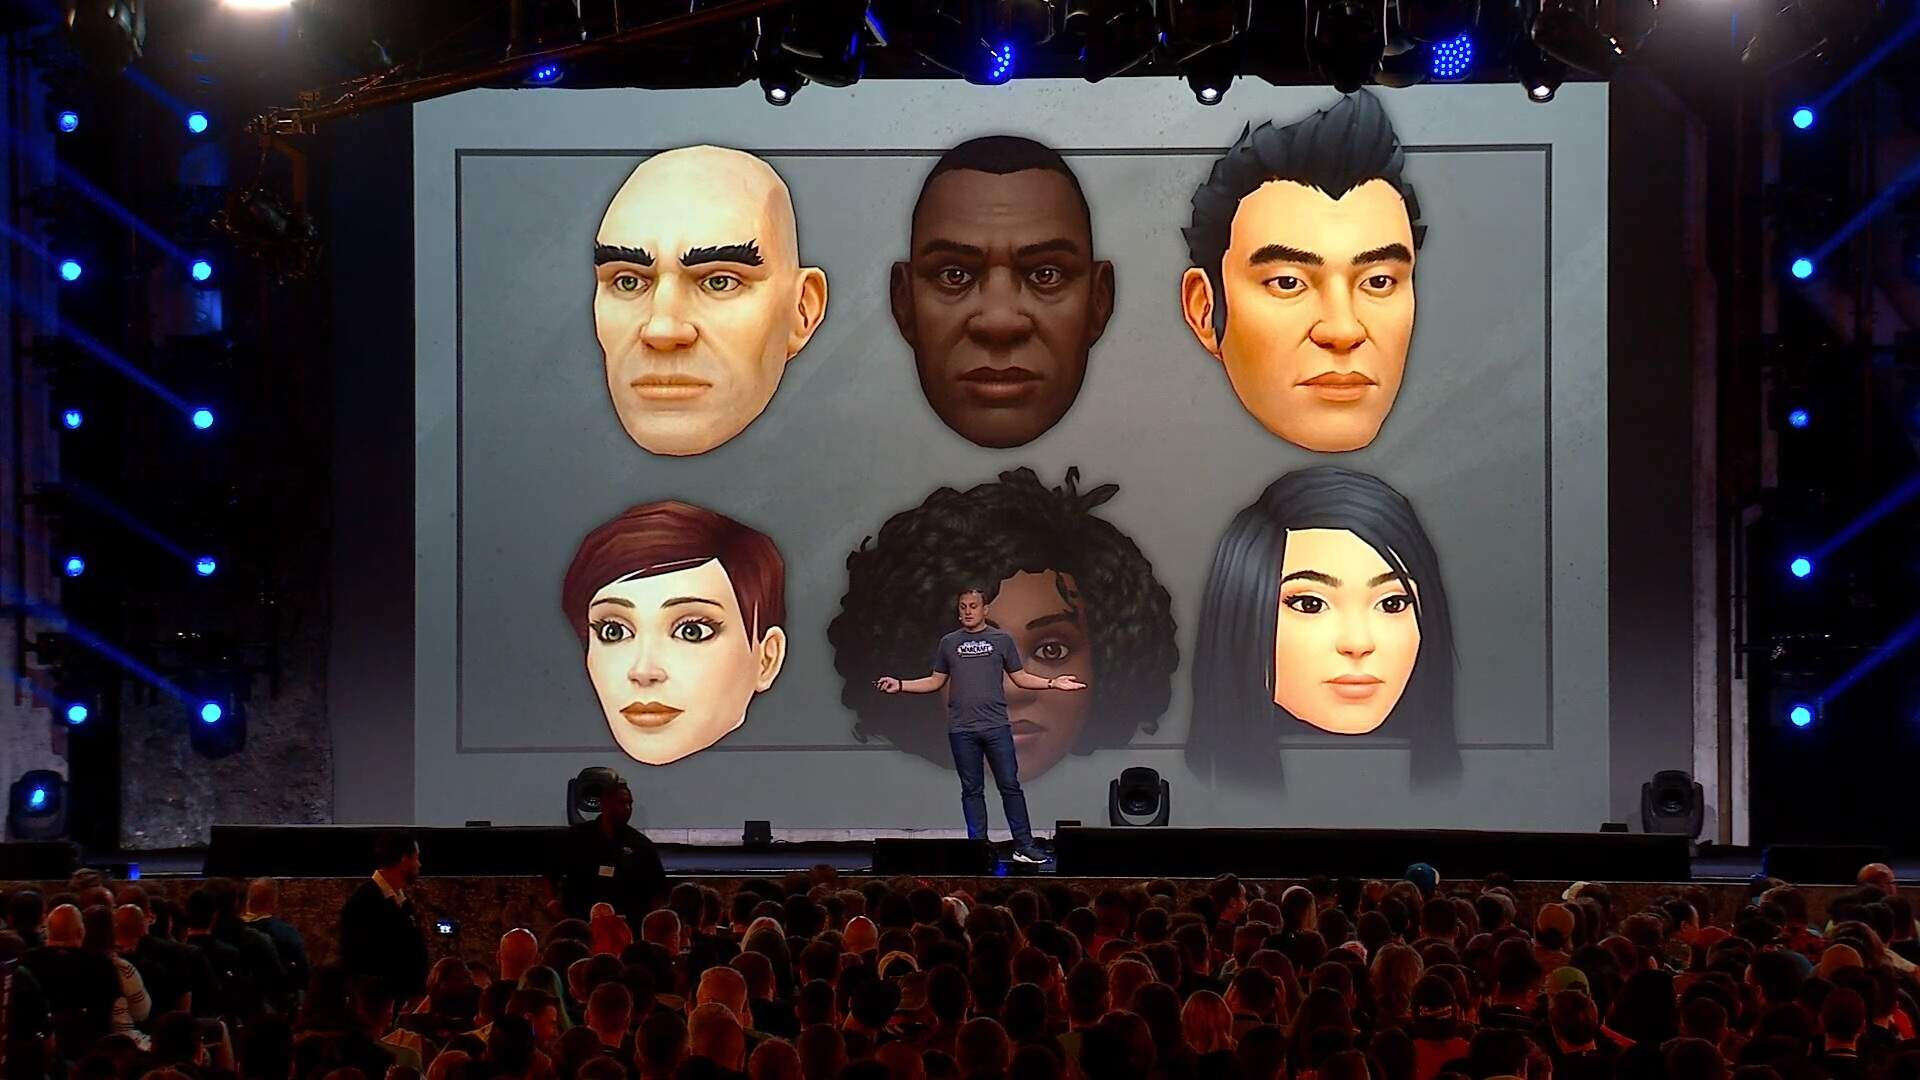 WoW Shadowlands Finally Adds Black and Asian Facial Options for Human Characters